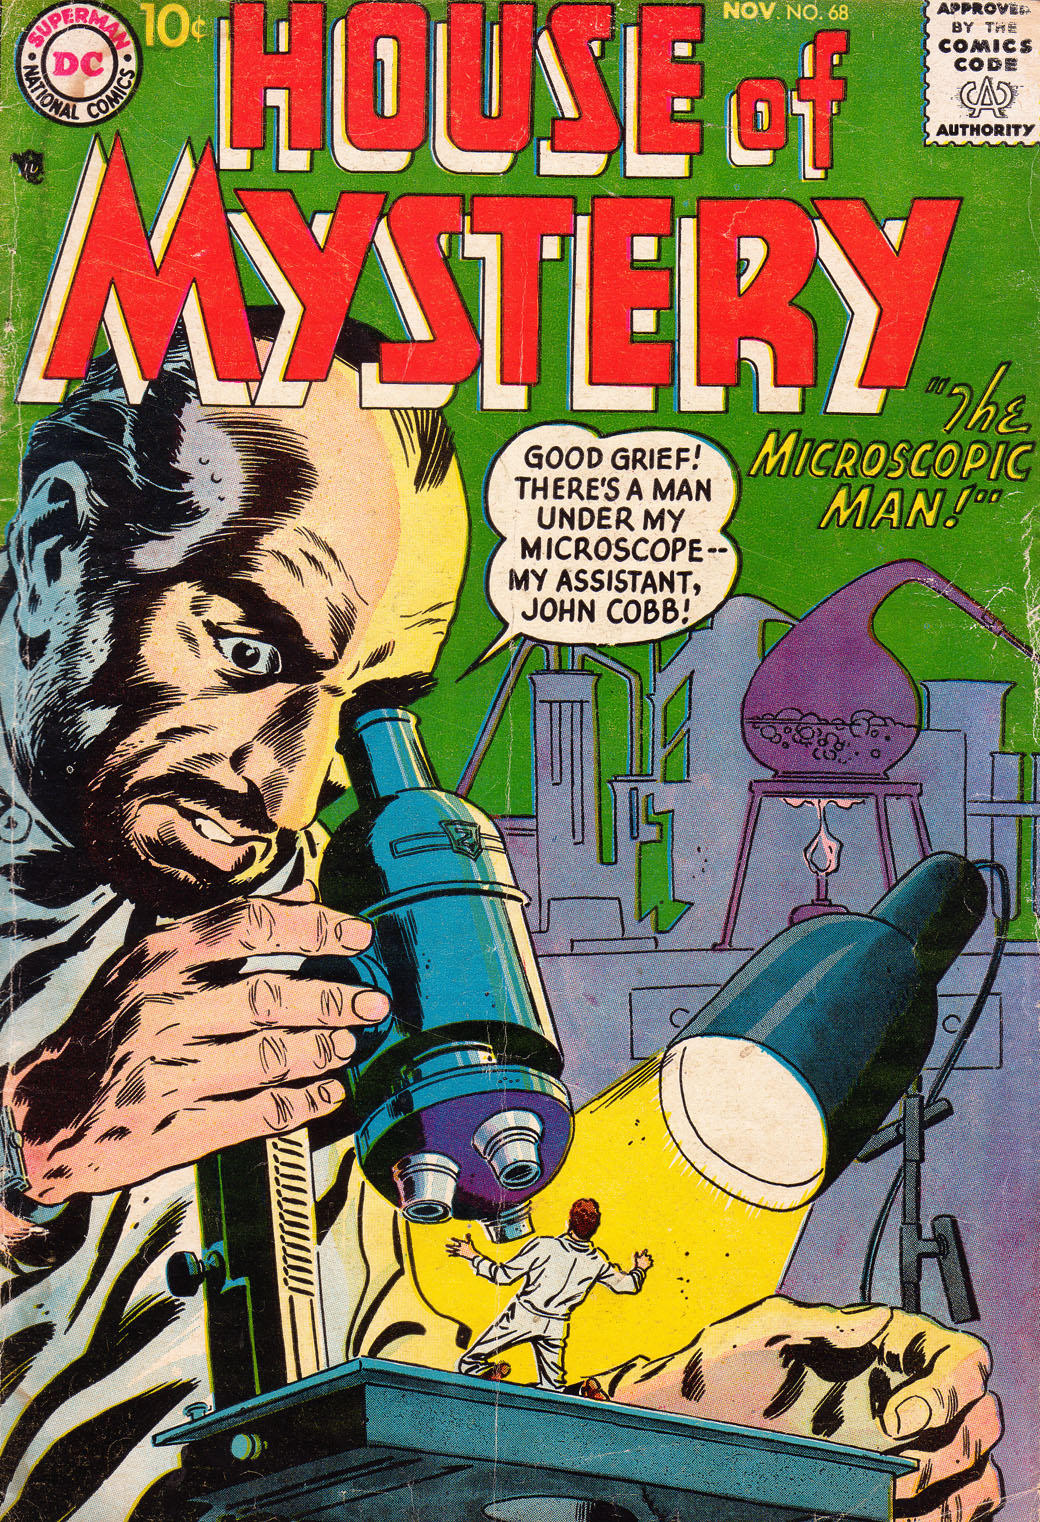 House of Mystery (1951) issue 68 - Page 1